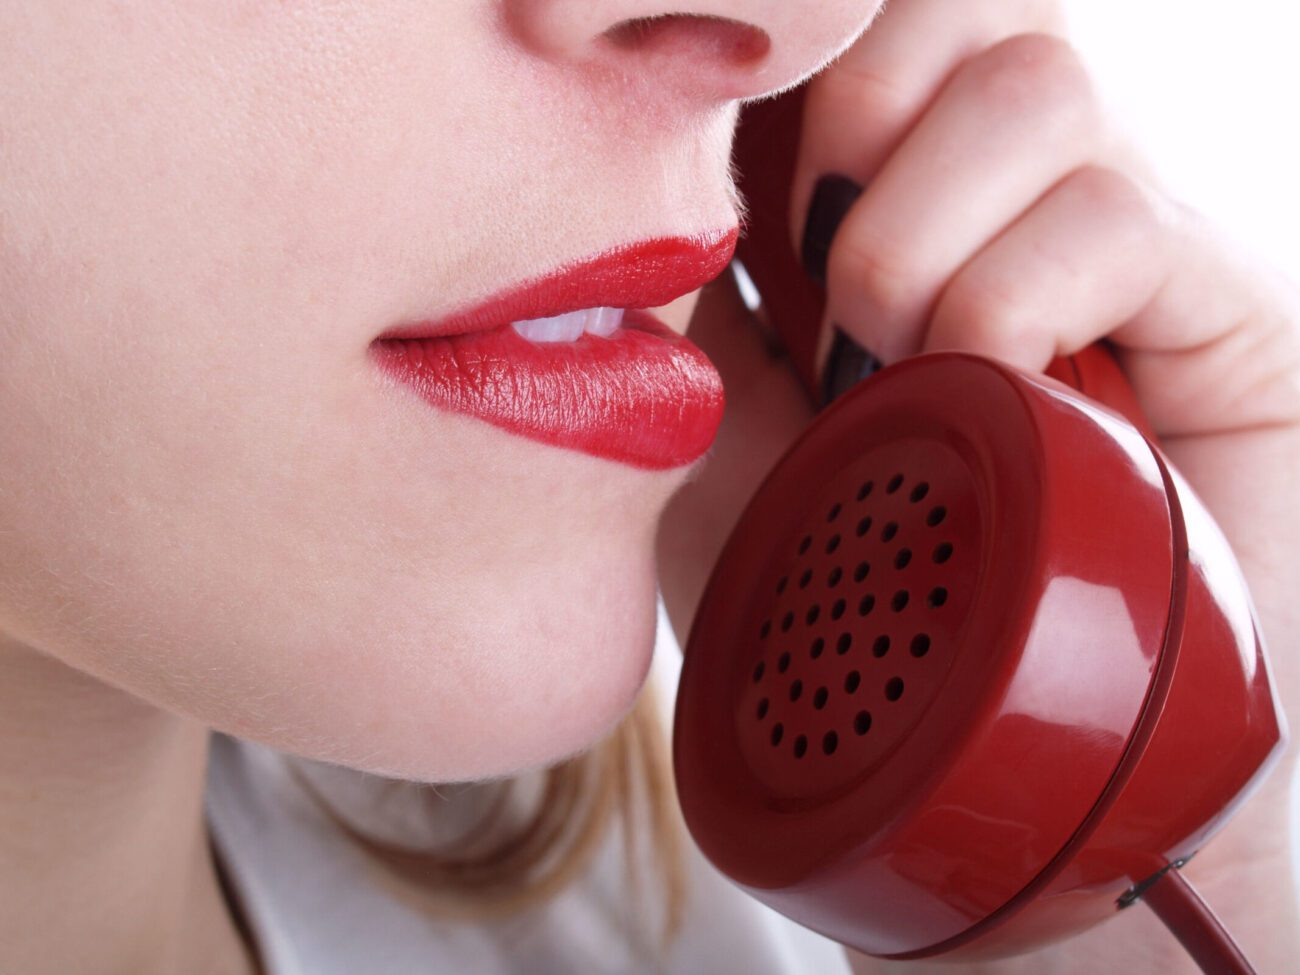 Are you feeling lonely and in the mood? Find some companionship completely free! Here are the best phone sex hotlines you can call right now for $0.